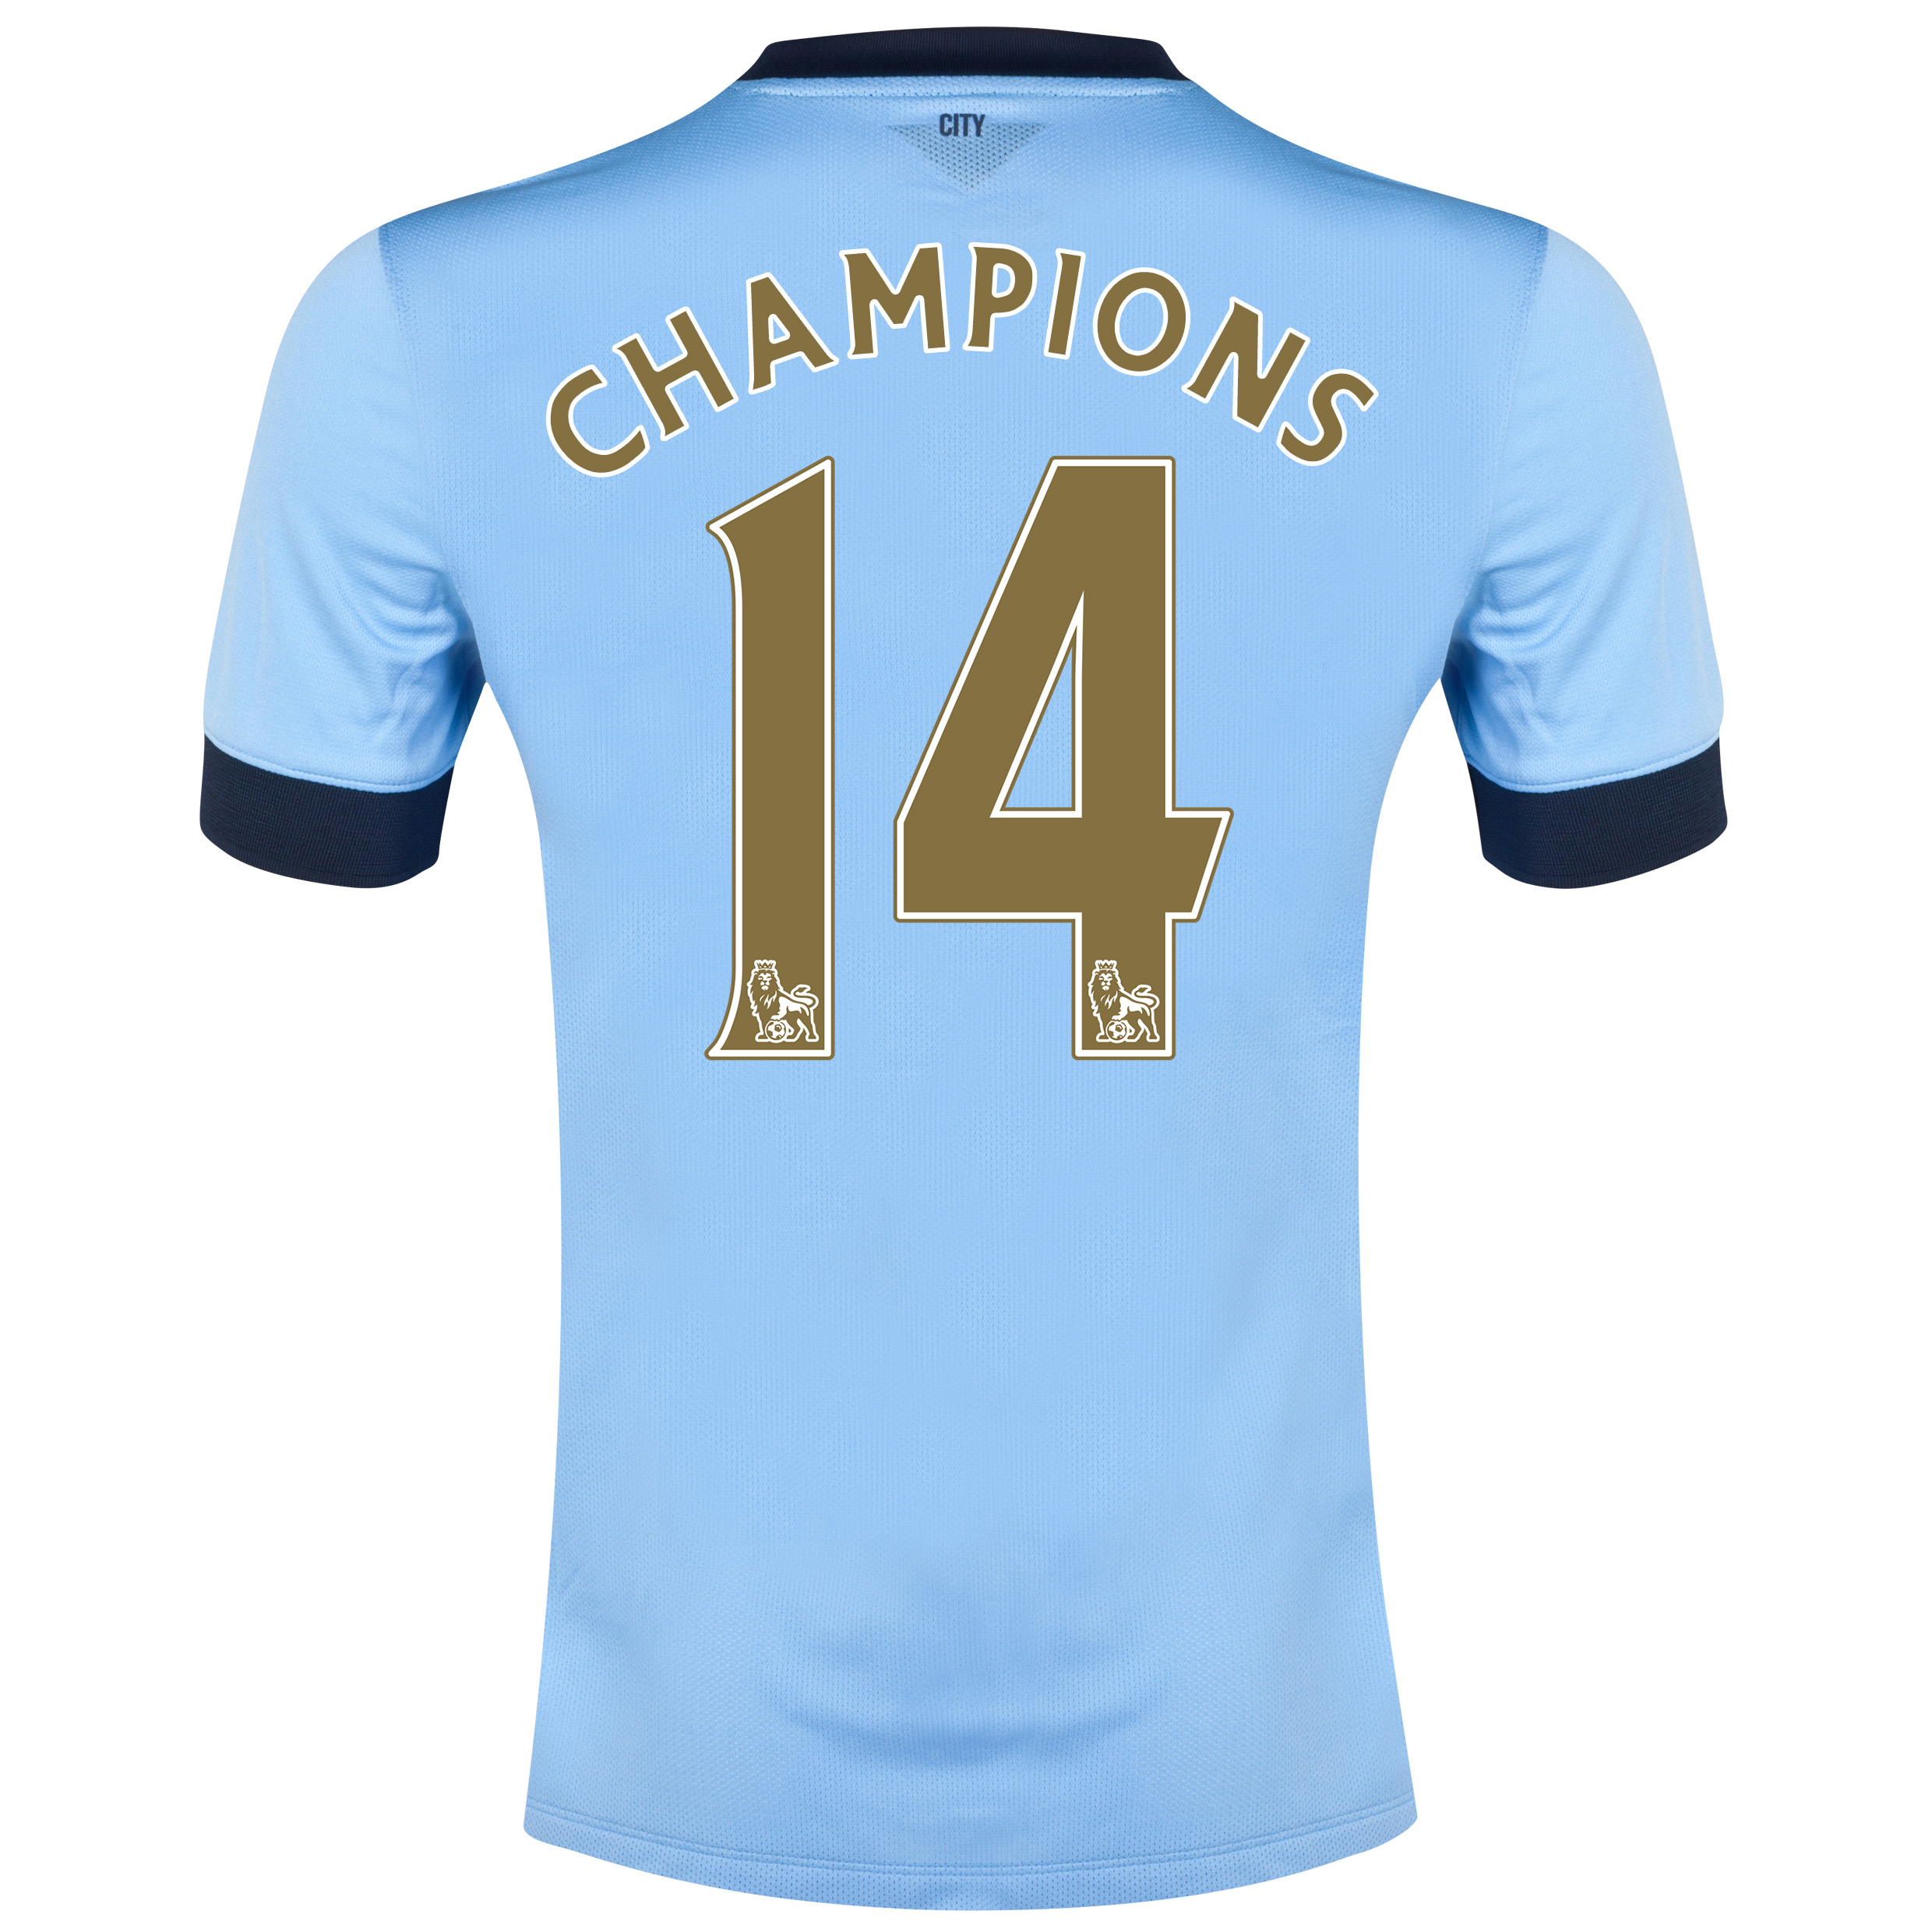 Manchester City Home Shirt 2014/15 - Kids Sky Blue with Gold Champions 14 printing